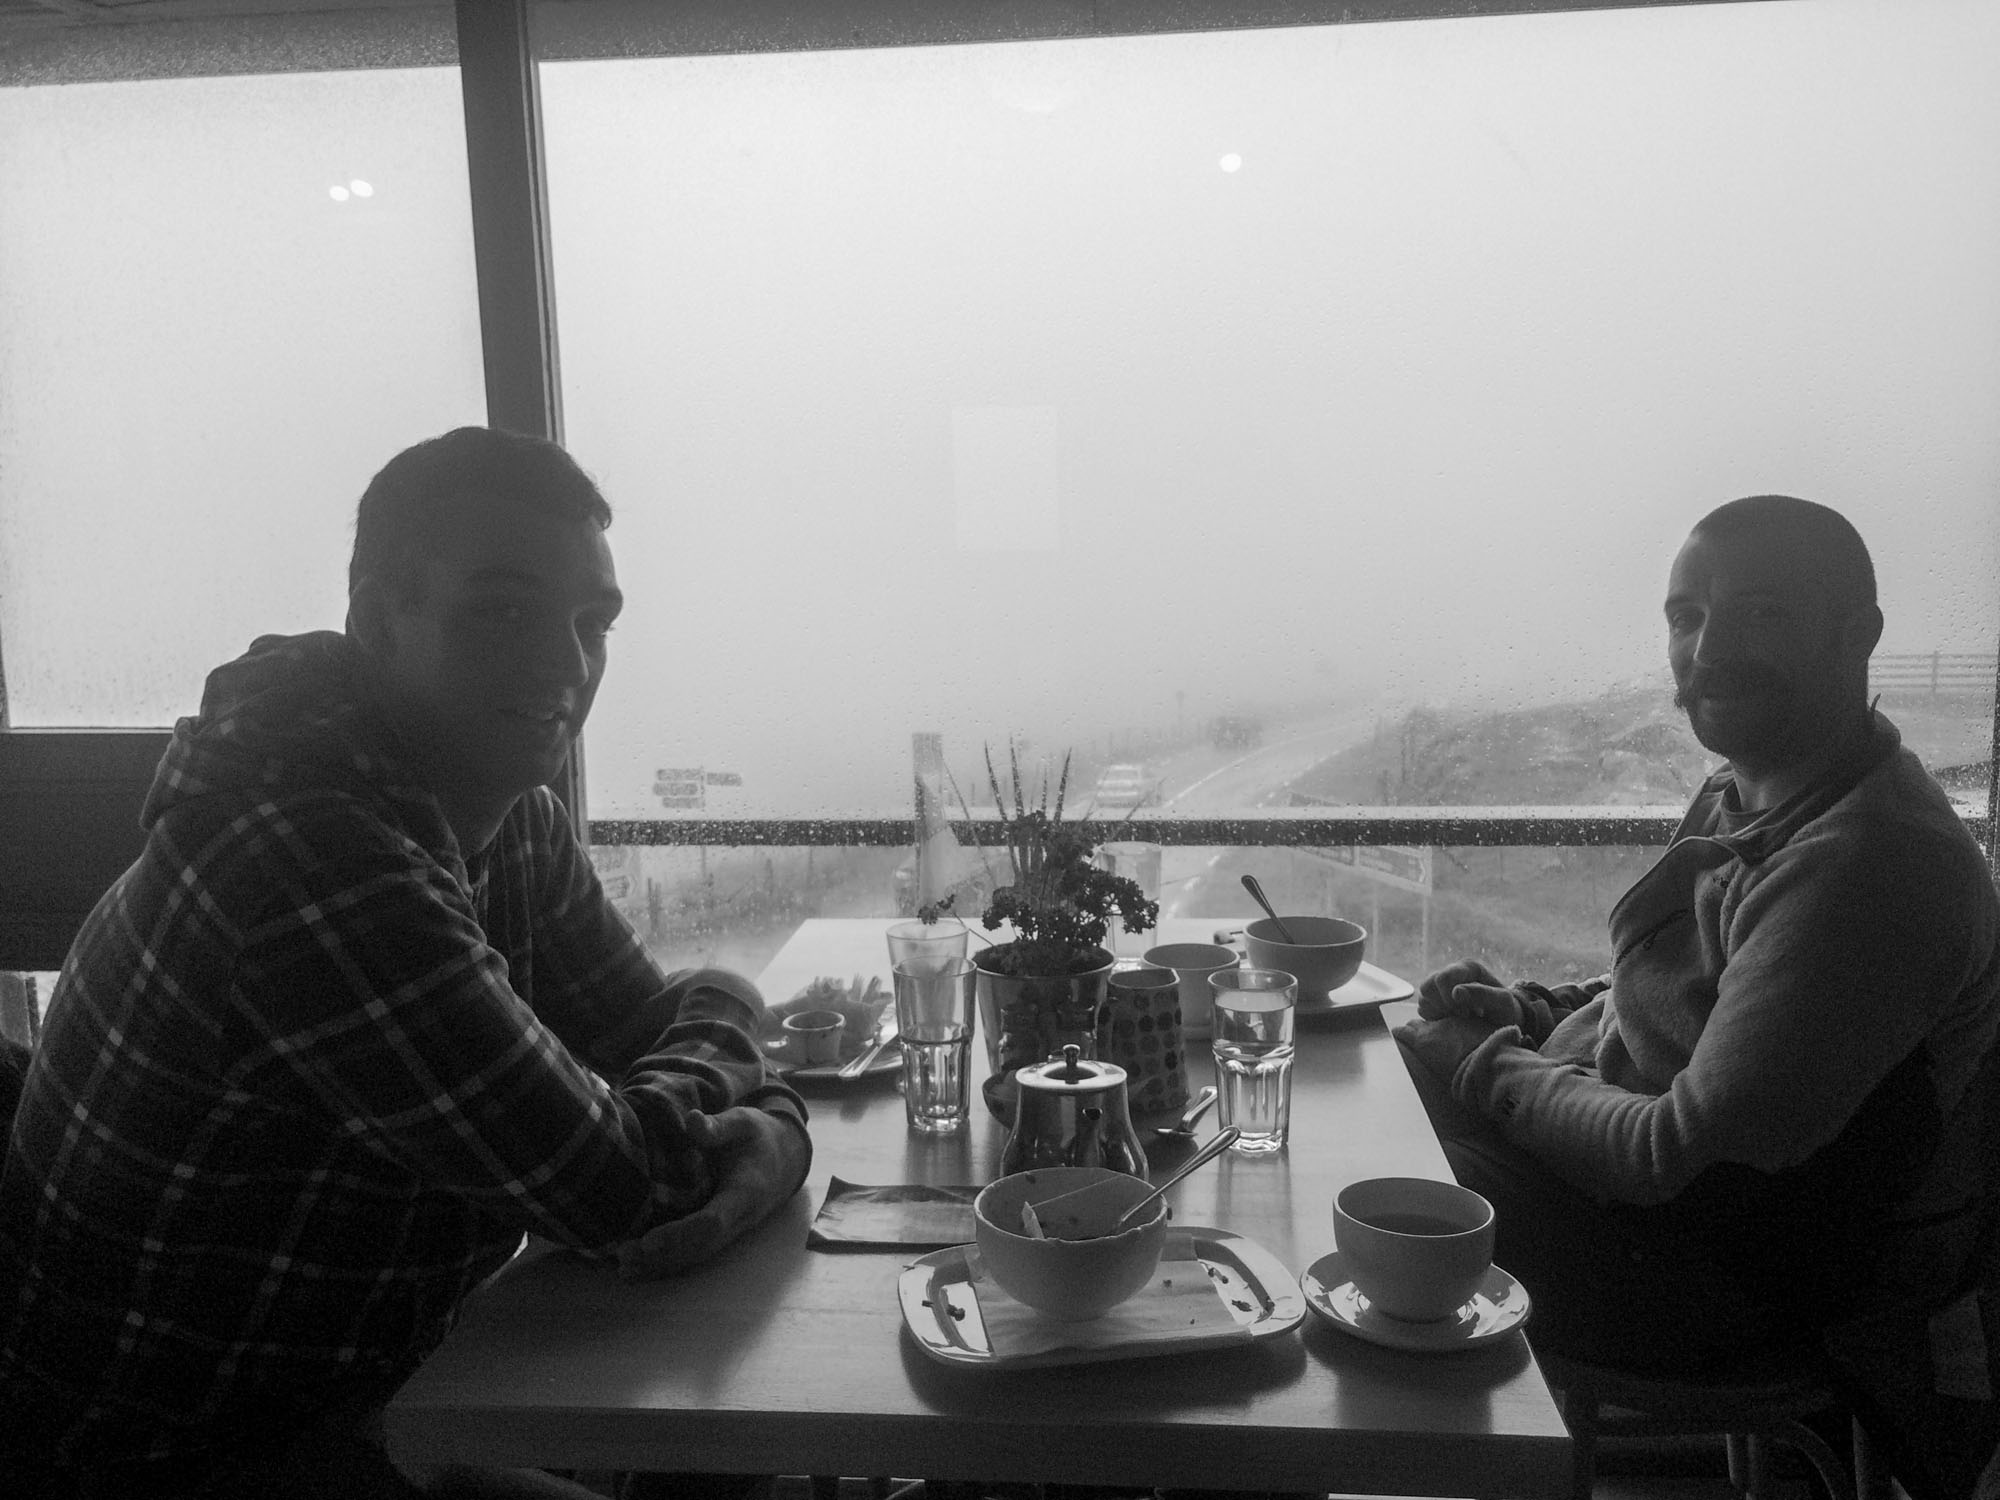 Dara & Ollie 'the A team' taking a tea break from the filming duties in Killarney